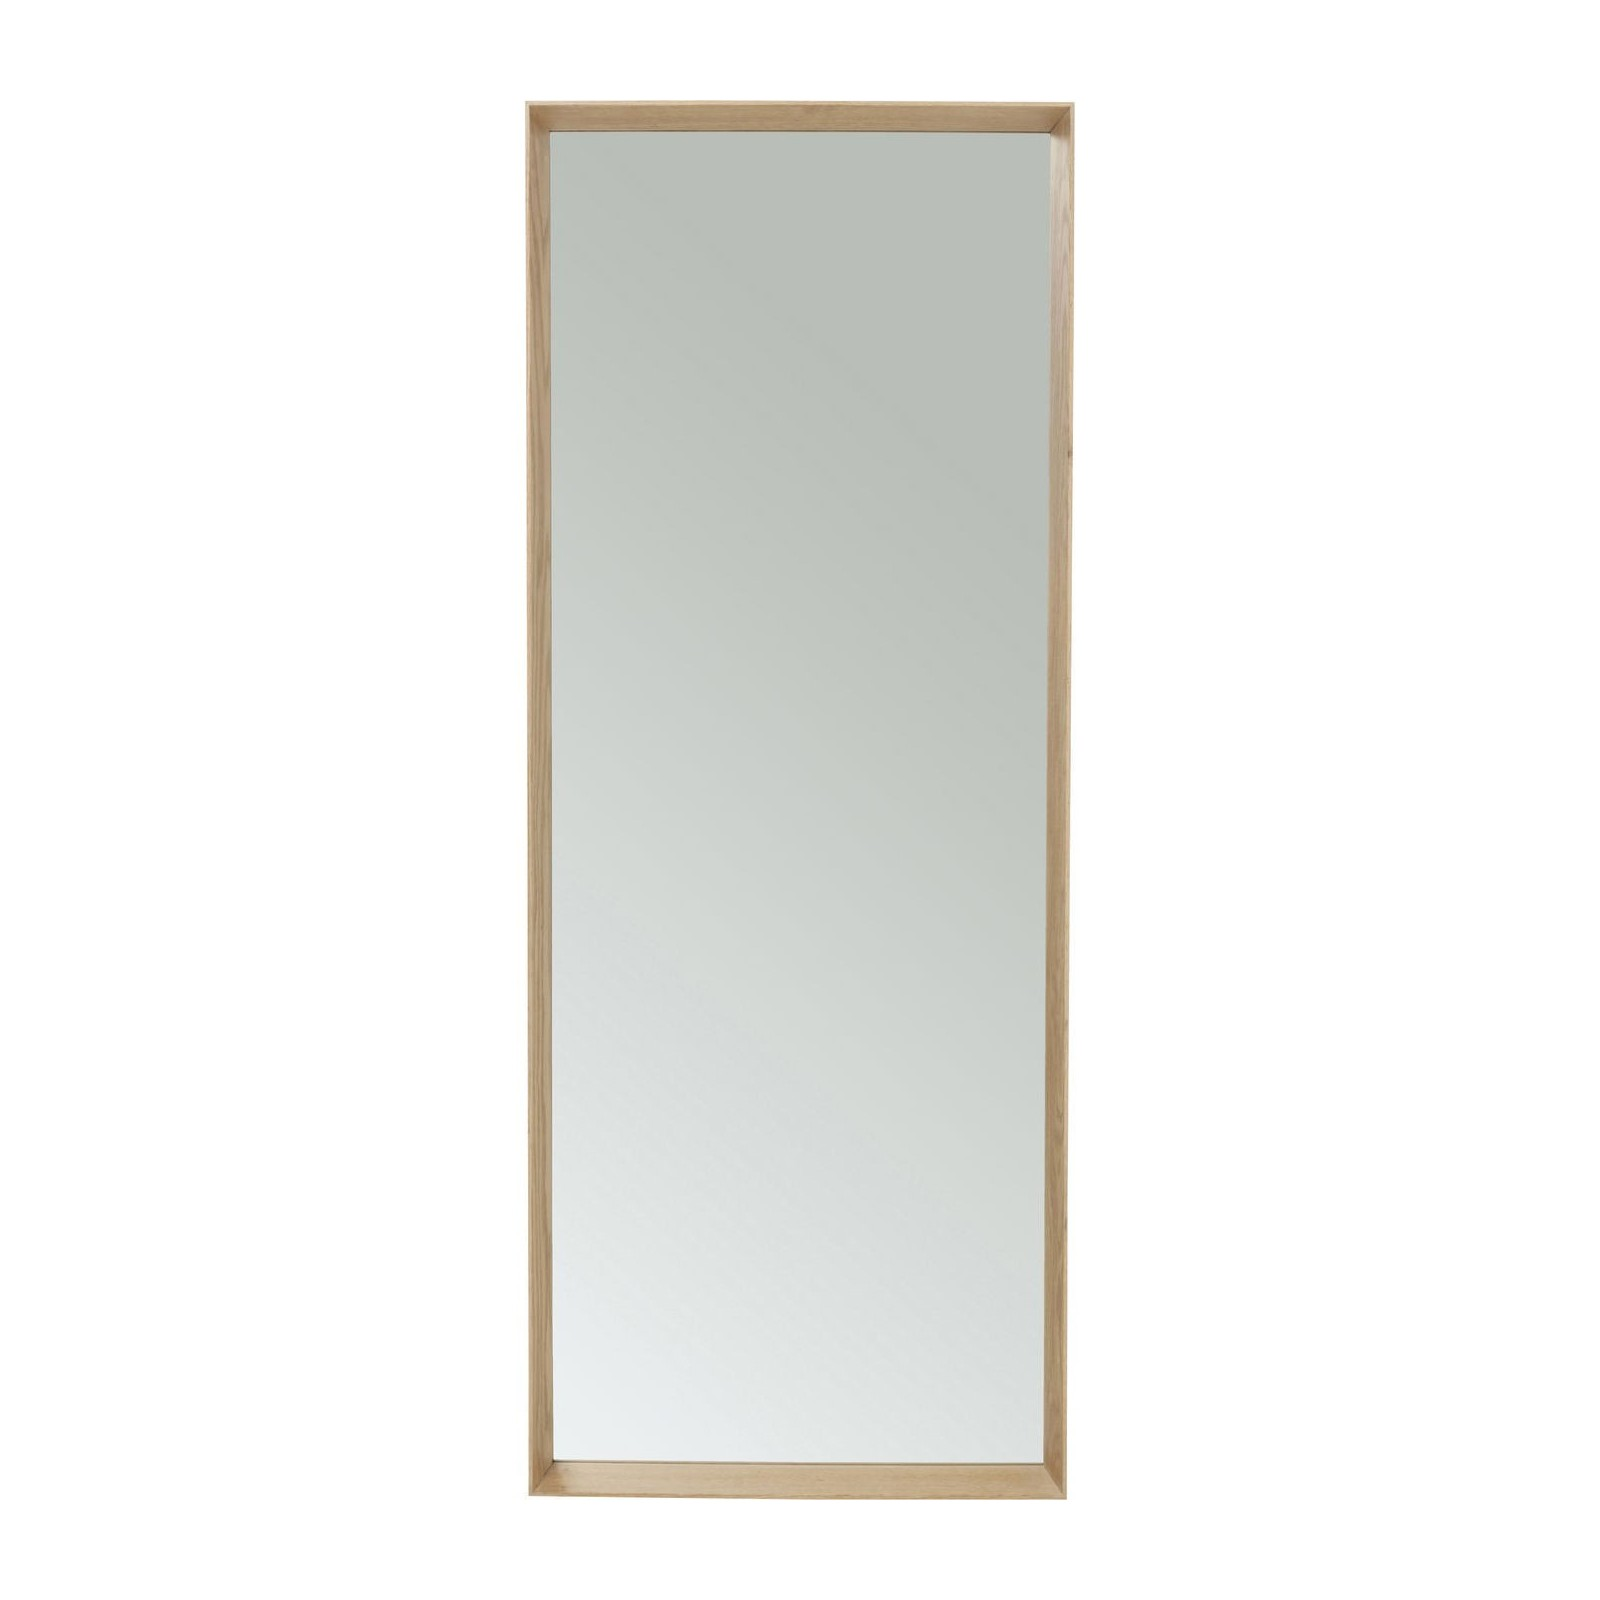 Miroir montreal 160x60cm kare design for Decoration miroir design